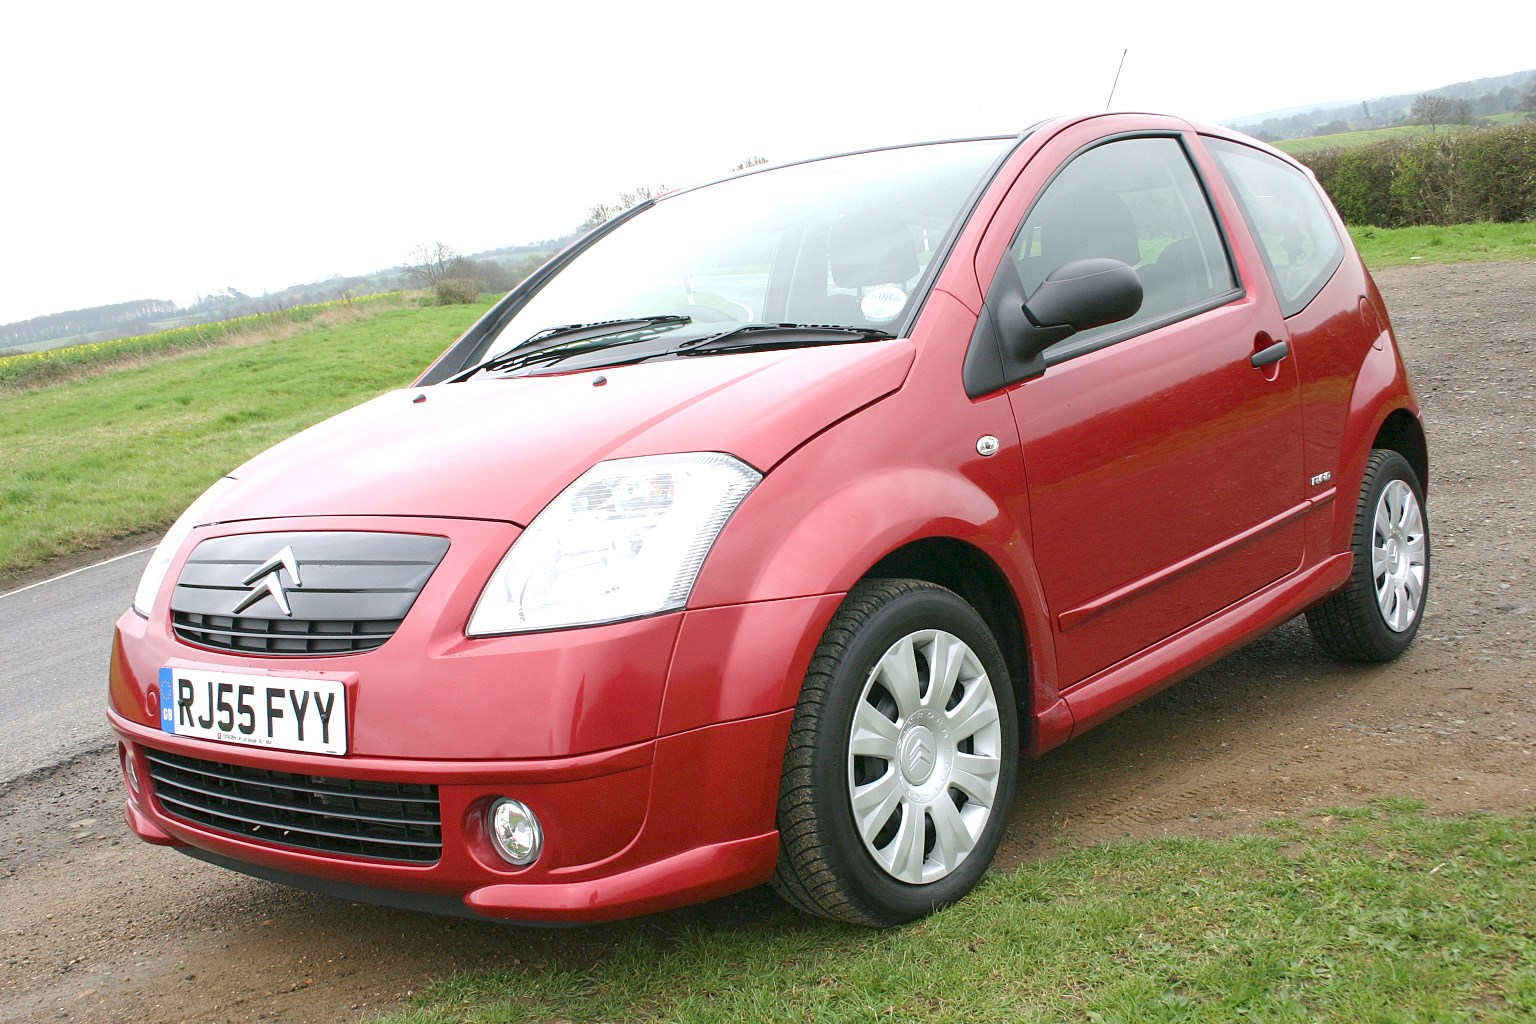 Cheap Car Insurance For Young Drivers >> Citroën C2 Hatchback Review (2003 - 2009) | Parkers